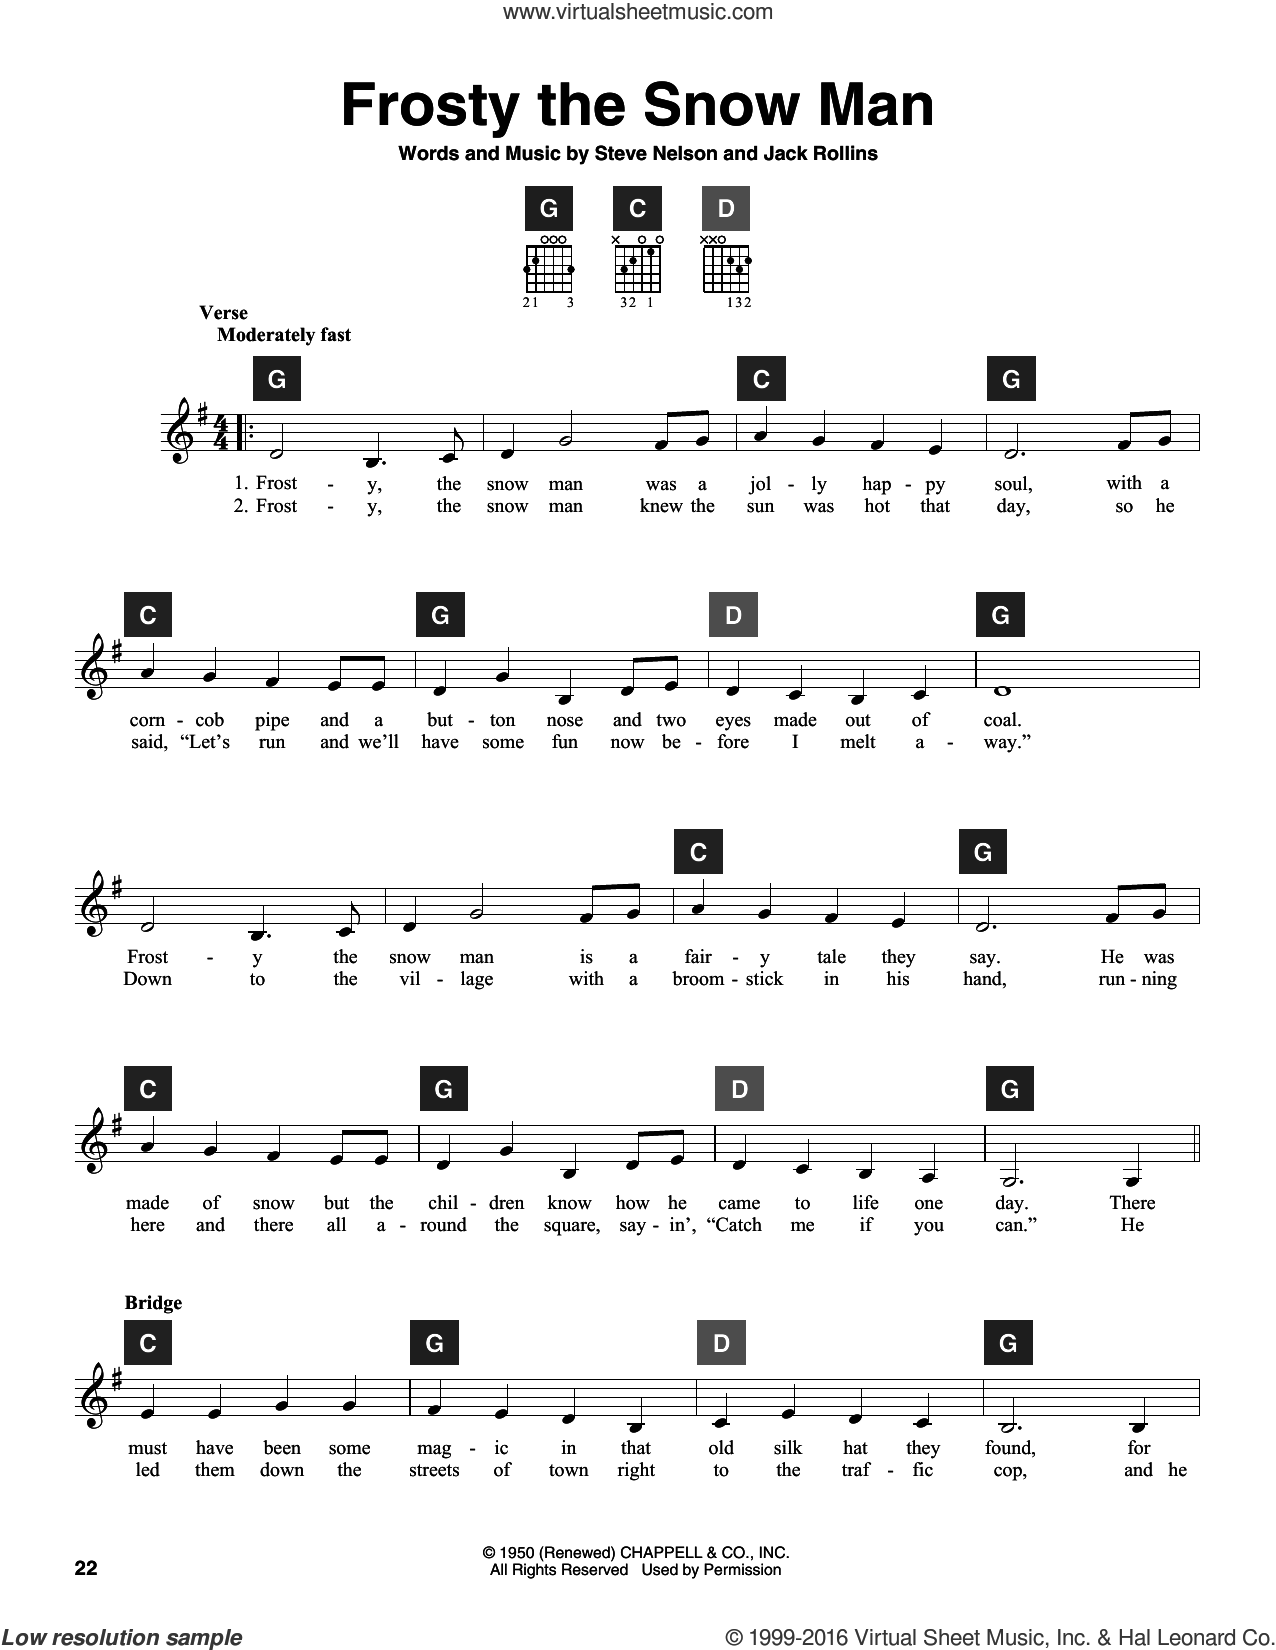 Frosty The Snow Man sheet music for guitar solo (ChordBuddy system) by Steve Nelson, Travis Perry and Jack Rollins, Christmas carol score, intermediate guitar (ChordBuddy system). Score Image Preview.